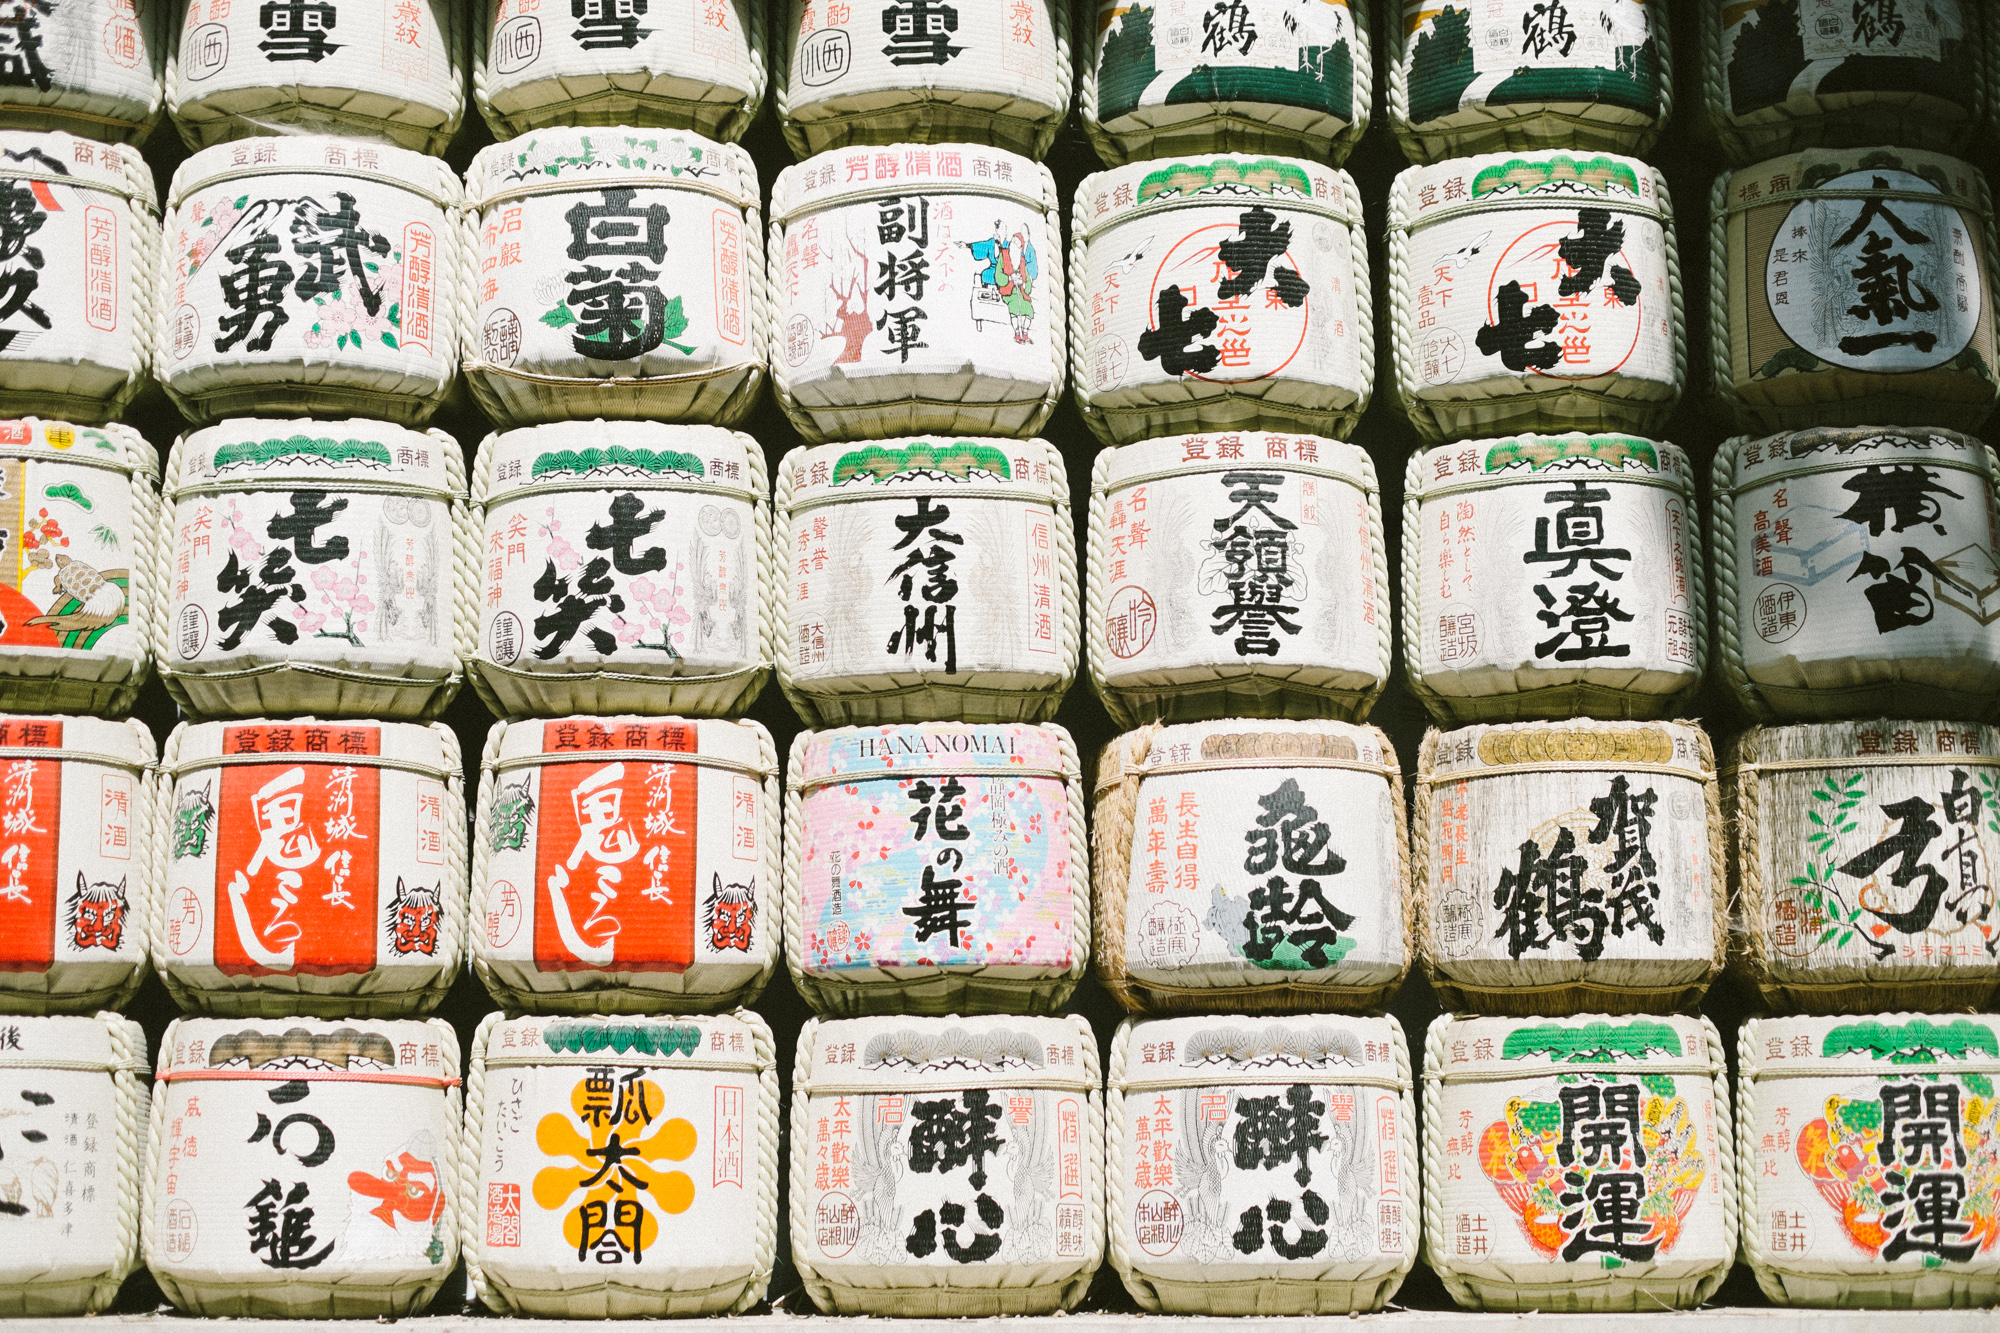 These are barrels of sake donated to the Meiji Shrine. Sadly, they are empty.